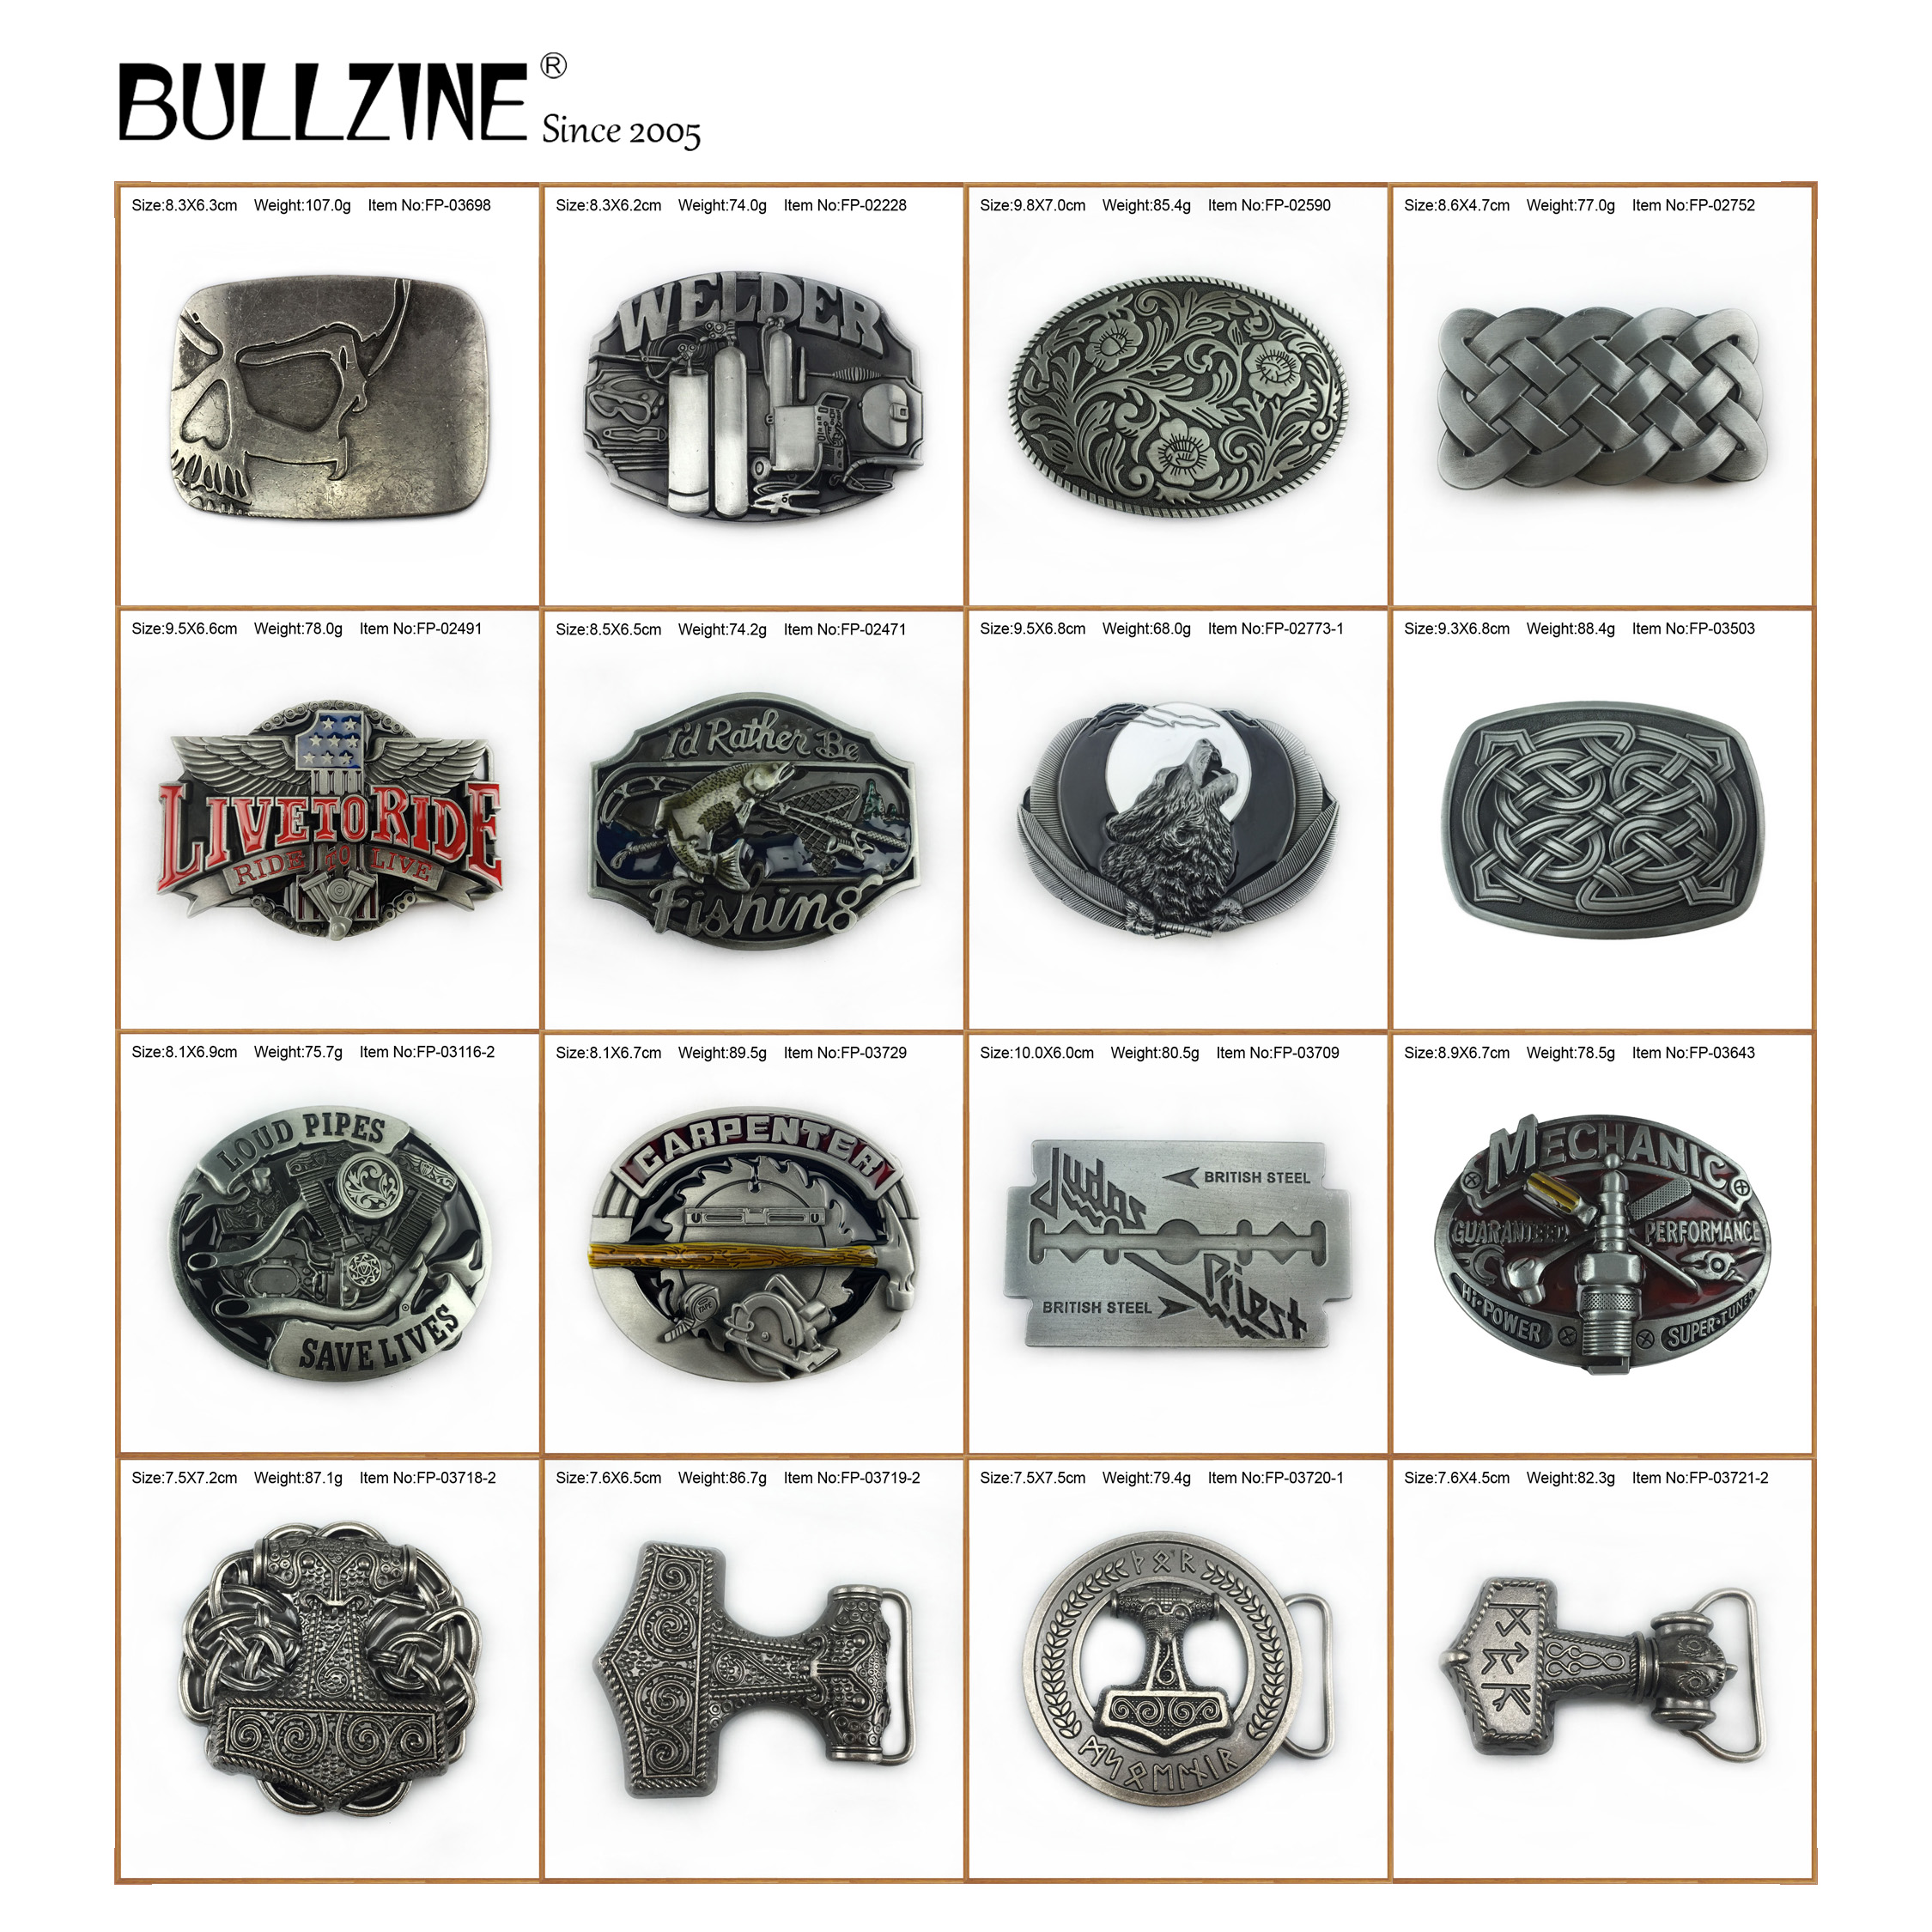 Bullzine zinc alloy Mjolnir THORSHAMMER VIKING JUDAS music belt buckle welder wolf CARPENTER MECHANIC celtic Fishing belt buckle